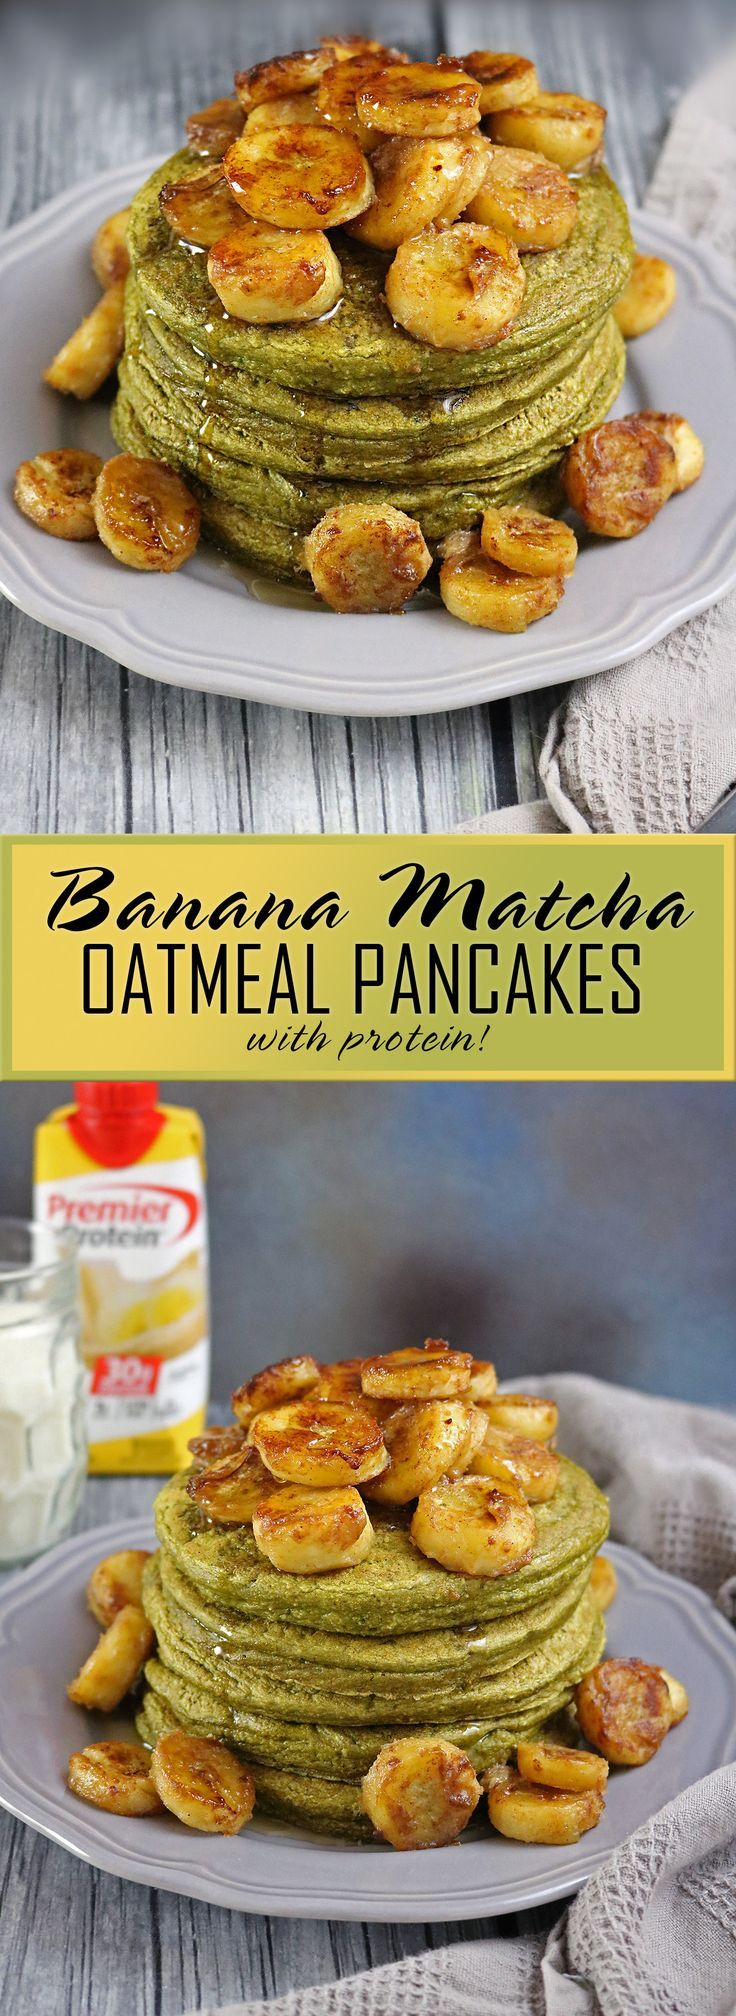 Banana Matcha Oatmeal Pancakes  On the blog today, you fill find these super simple, 6-ingredient, /PremierProtein/ packed, Banana Matcha Oatmeal Pancakes with Cinnamon Cream Bananas ...and, A GIVEAWAY!    Get the recipe and enter the giveaway > http://runninsrilankan.com/banana-matcha-oatmeal-pancakes/ ( link also in profile ).  .  .  #TheDayIsYours #sponsored #PremierProtein